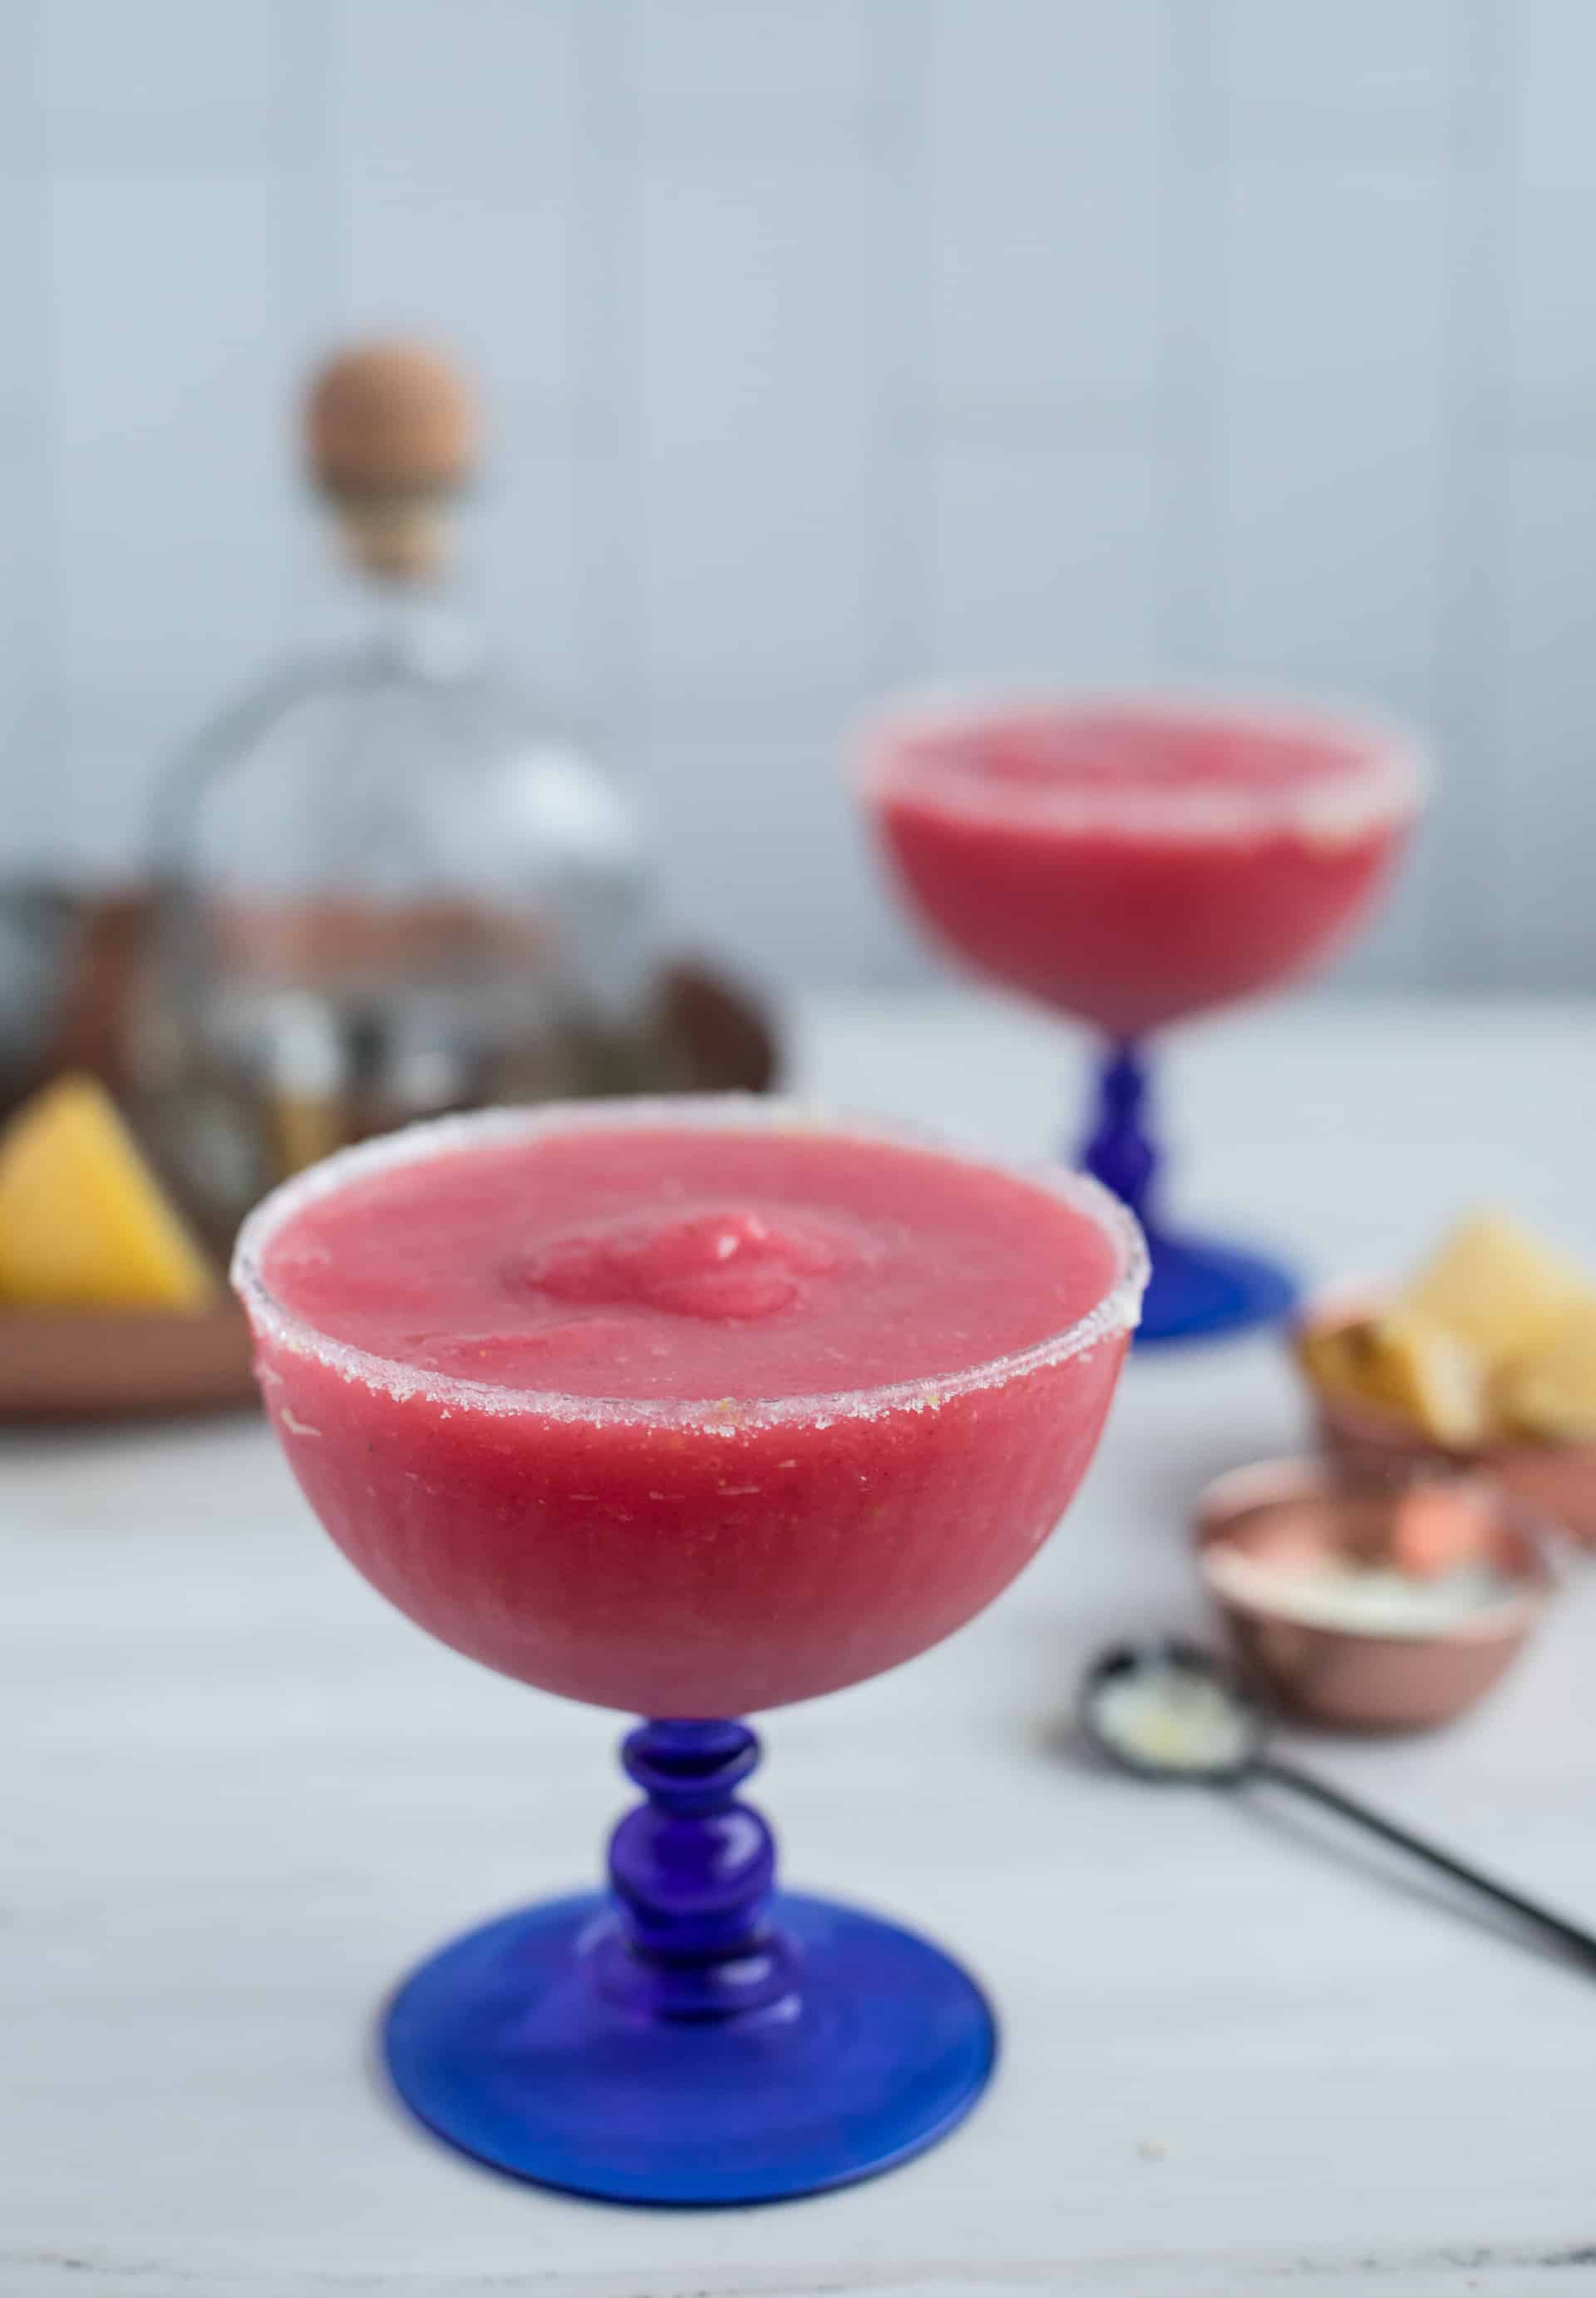 The Chilly Berry Margarita - A Limoncello Cocktail from LimoncelloQuest